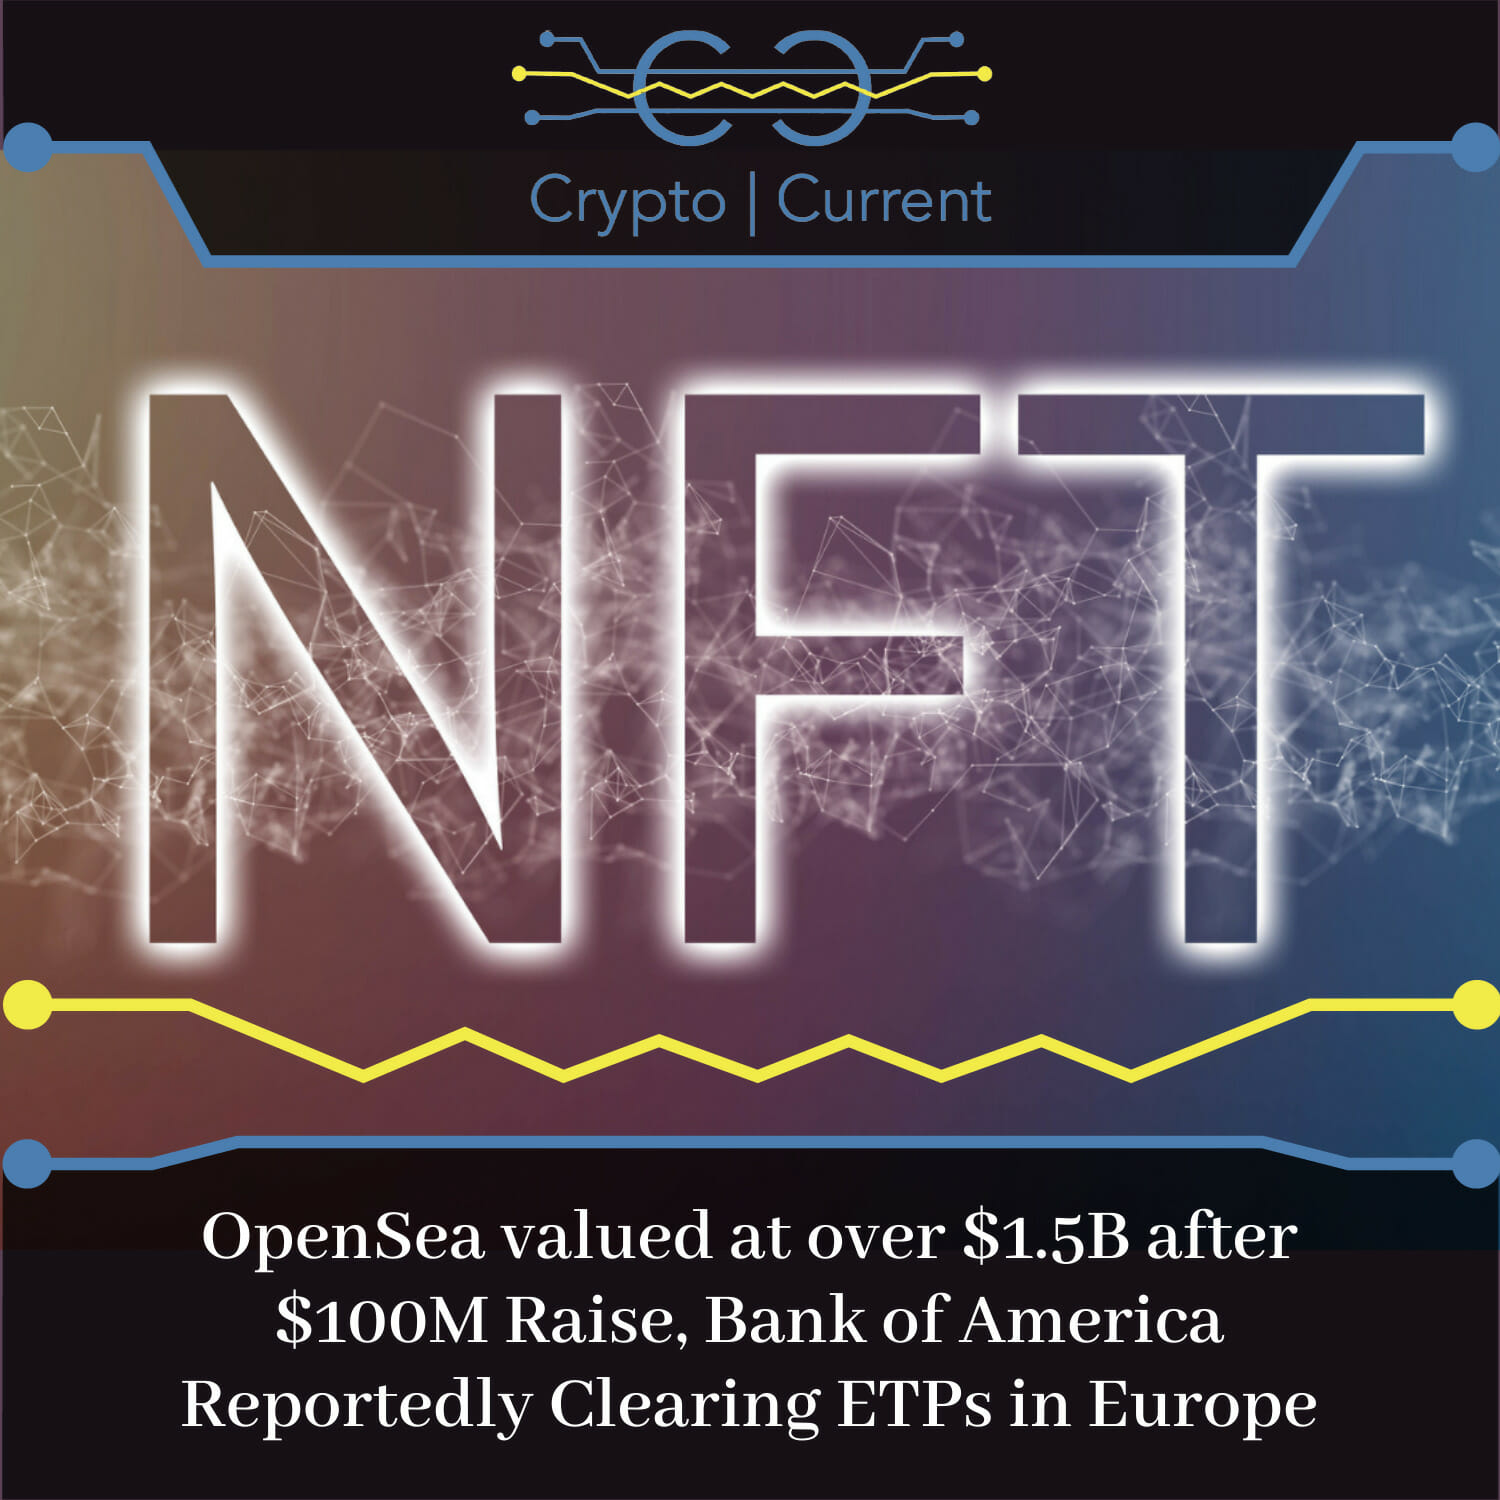 OpenSea valued at over $1.5 billion after $100 Raise, Bank of America Reportedly Clearing ETPs in Europe